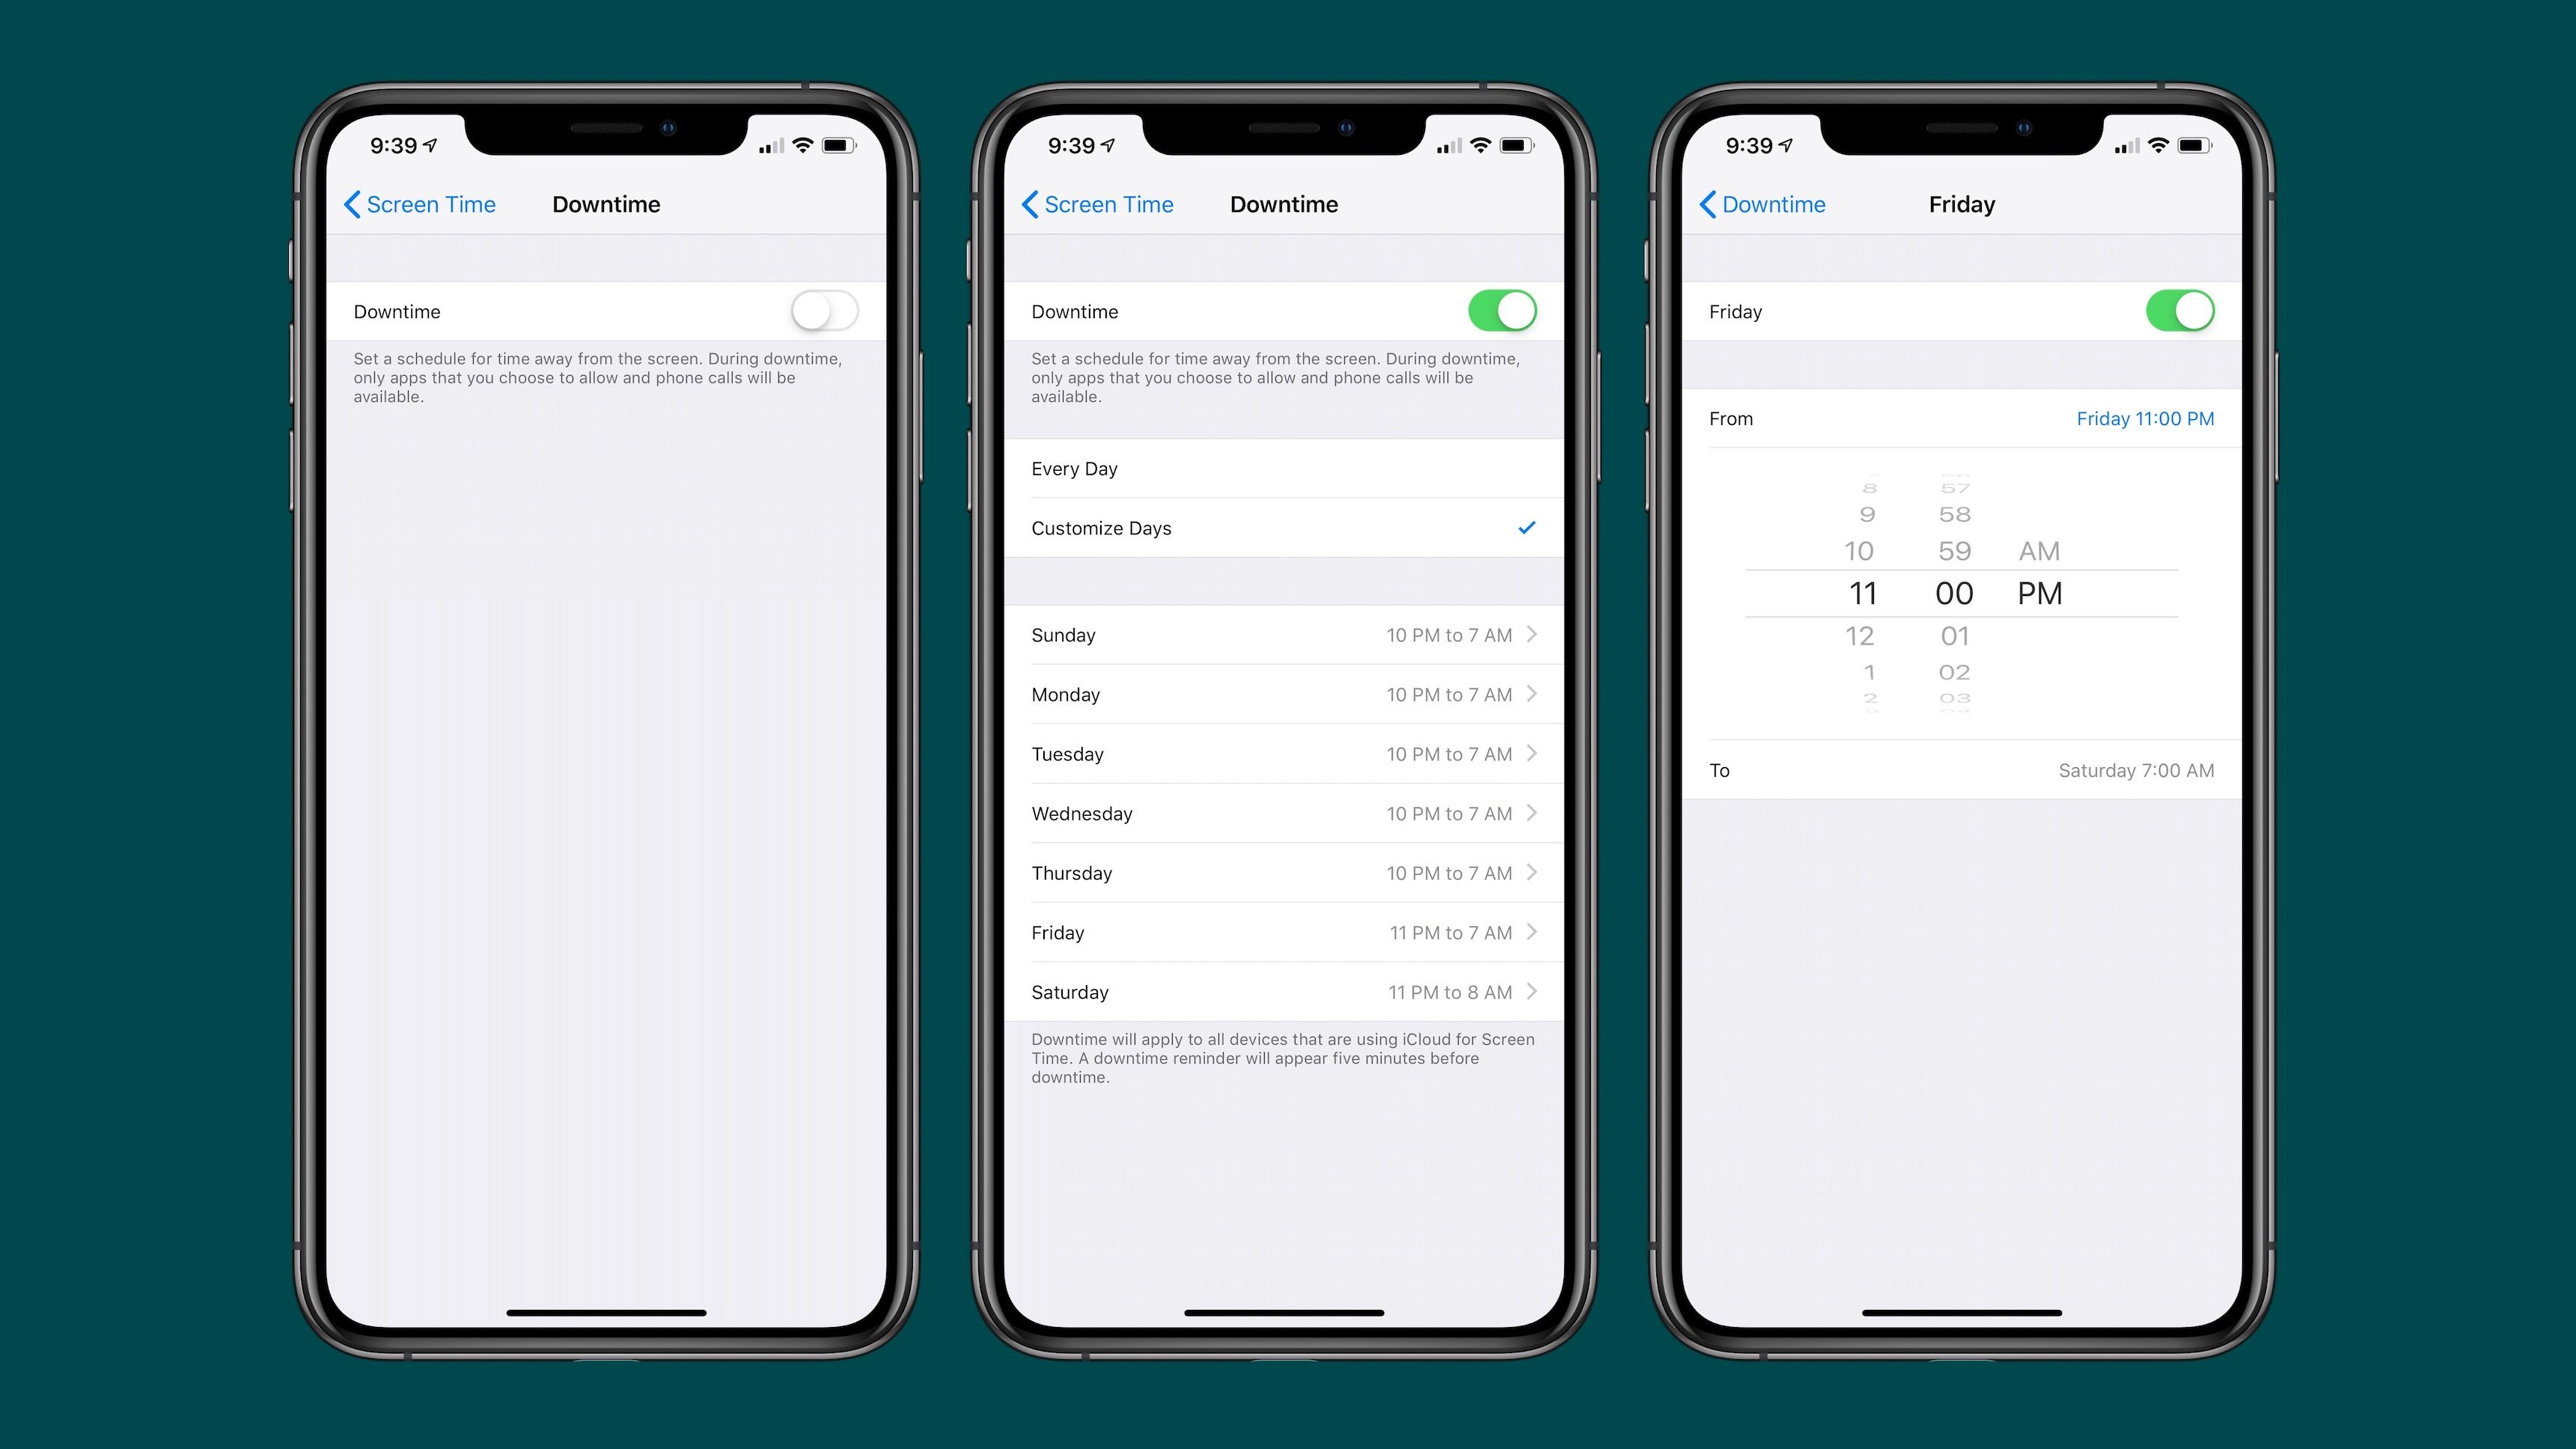 iOS 12.2 Beta Allows you to Customize Downtime in Screen Time by days of the week